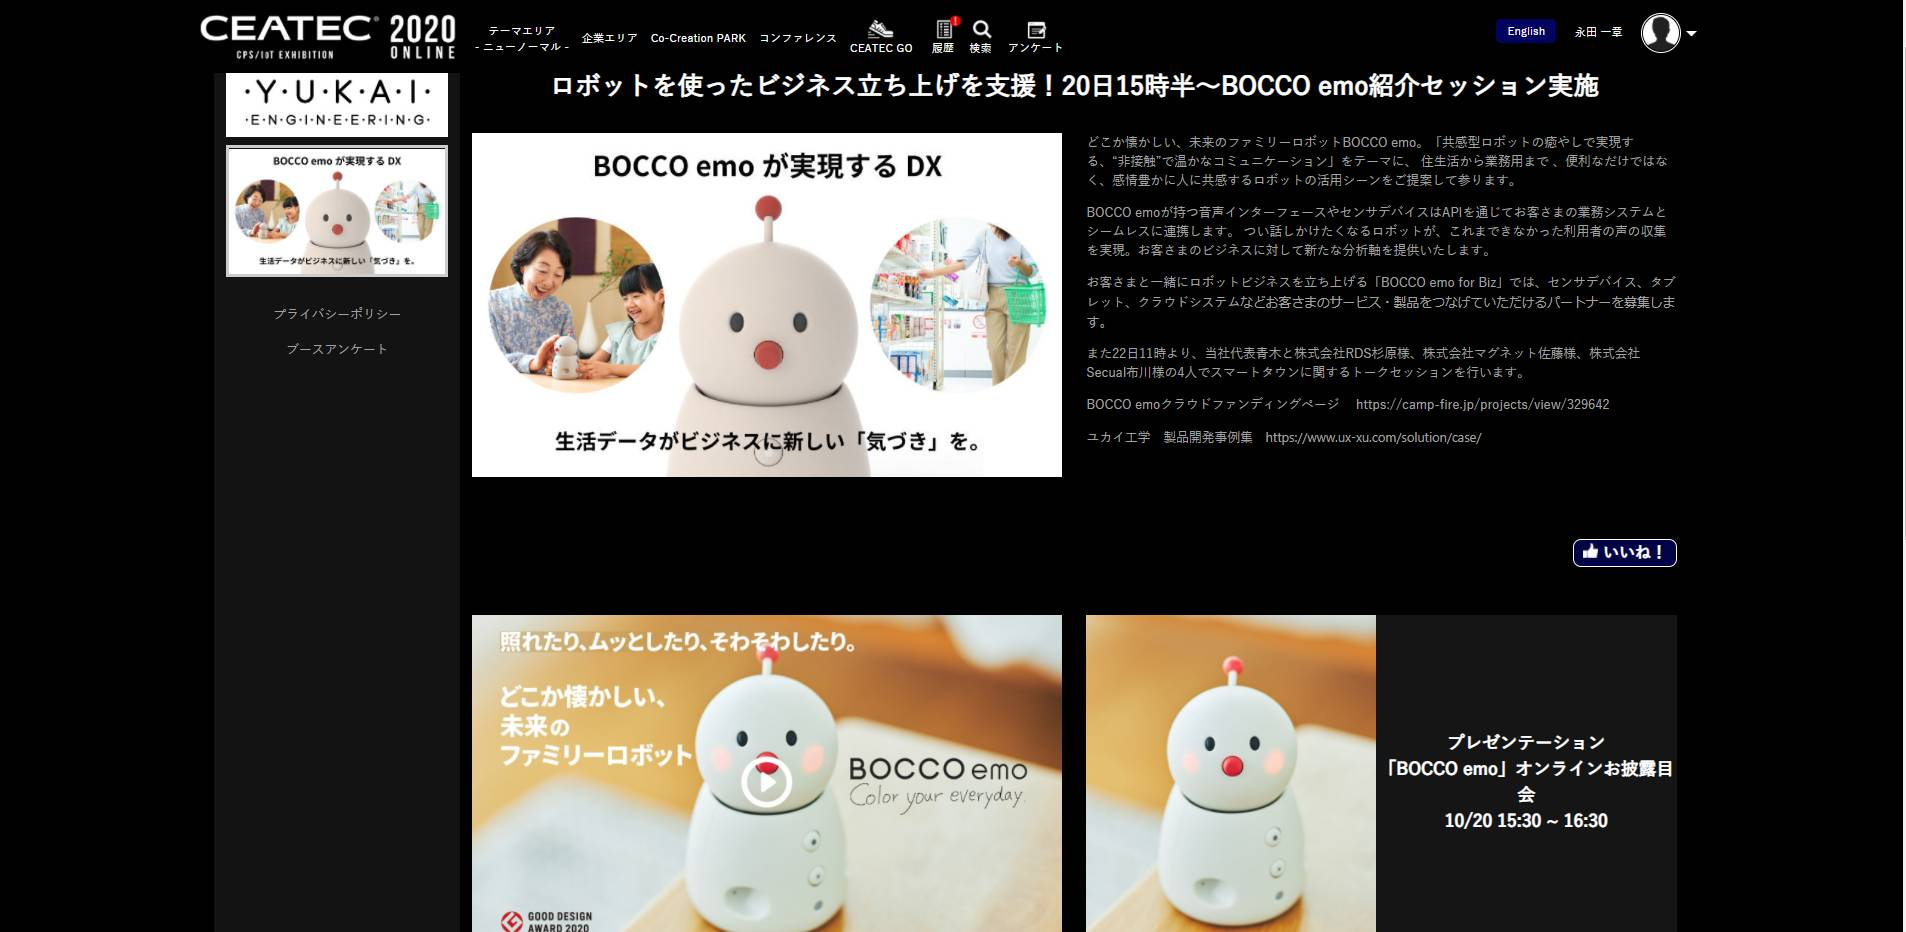 Yukai Engineering Inc., a Tokyo-based startup that creates communication robots, has created an online booth at the CEATEC show, which kicked off Tuesday and is being run completely online this year.